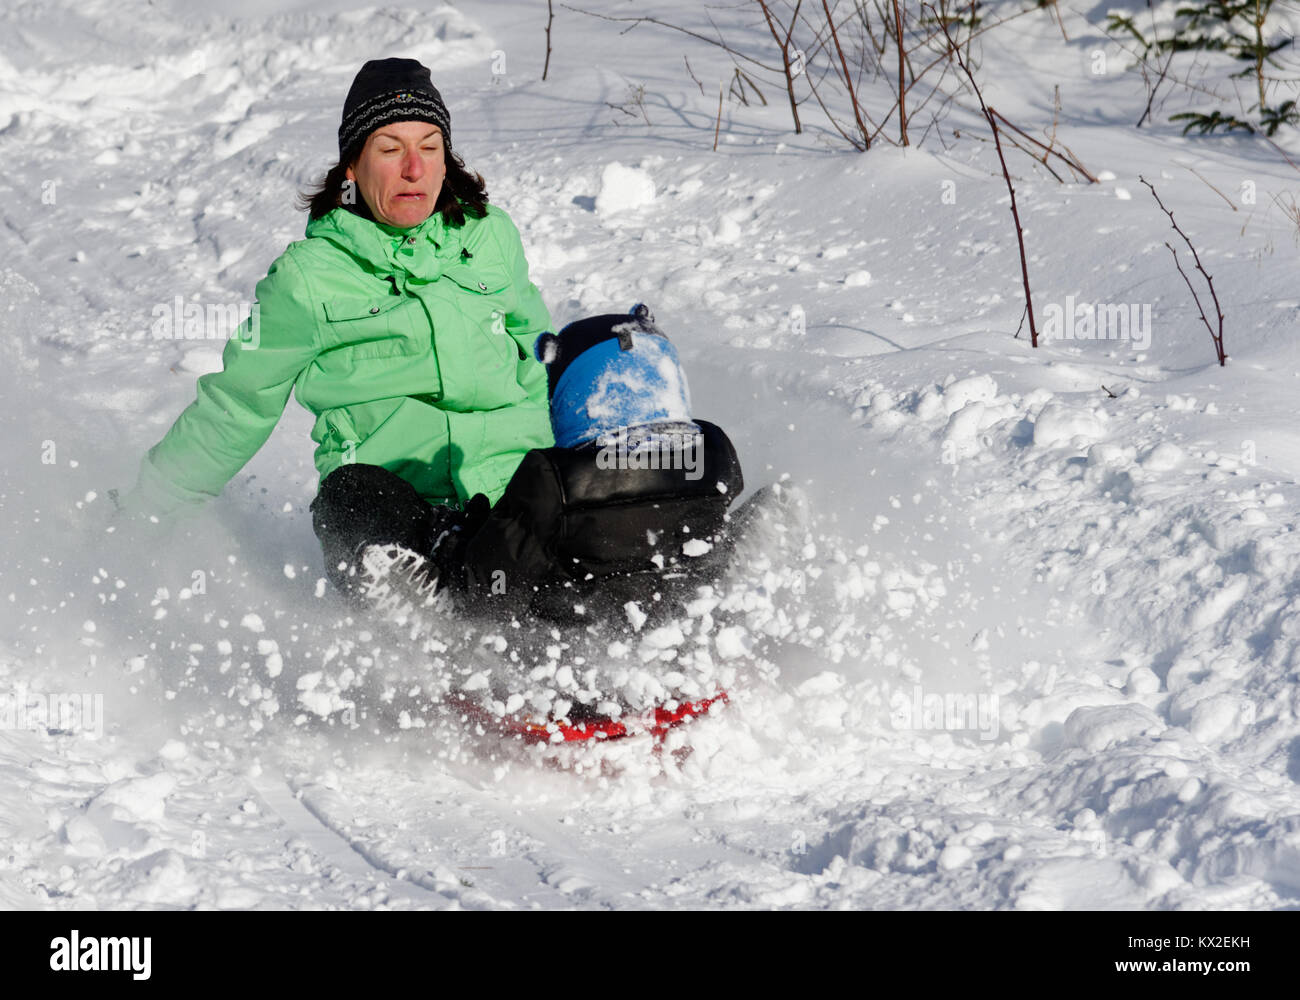 An adult woman sledging with a little boy (5 yr old), looking terrified as she realises she is going to crash - Stock Image